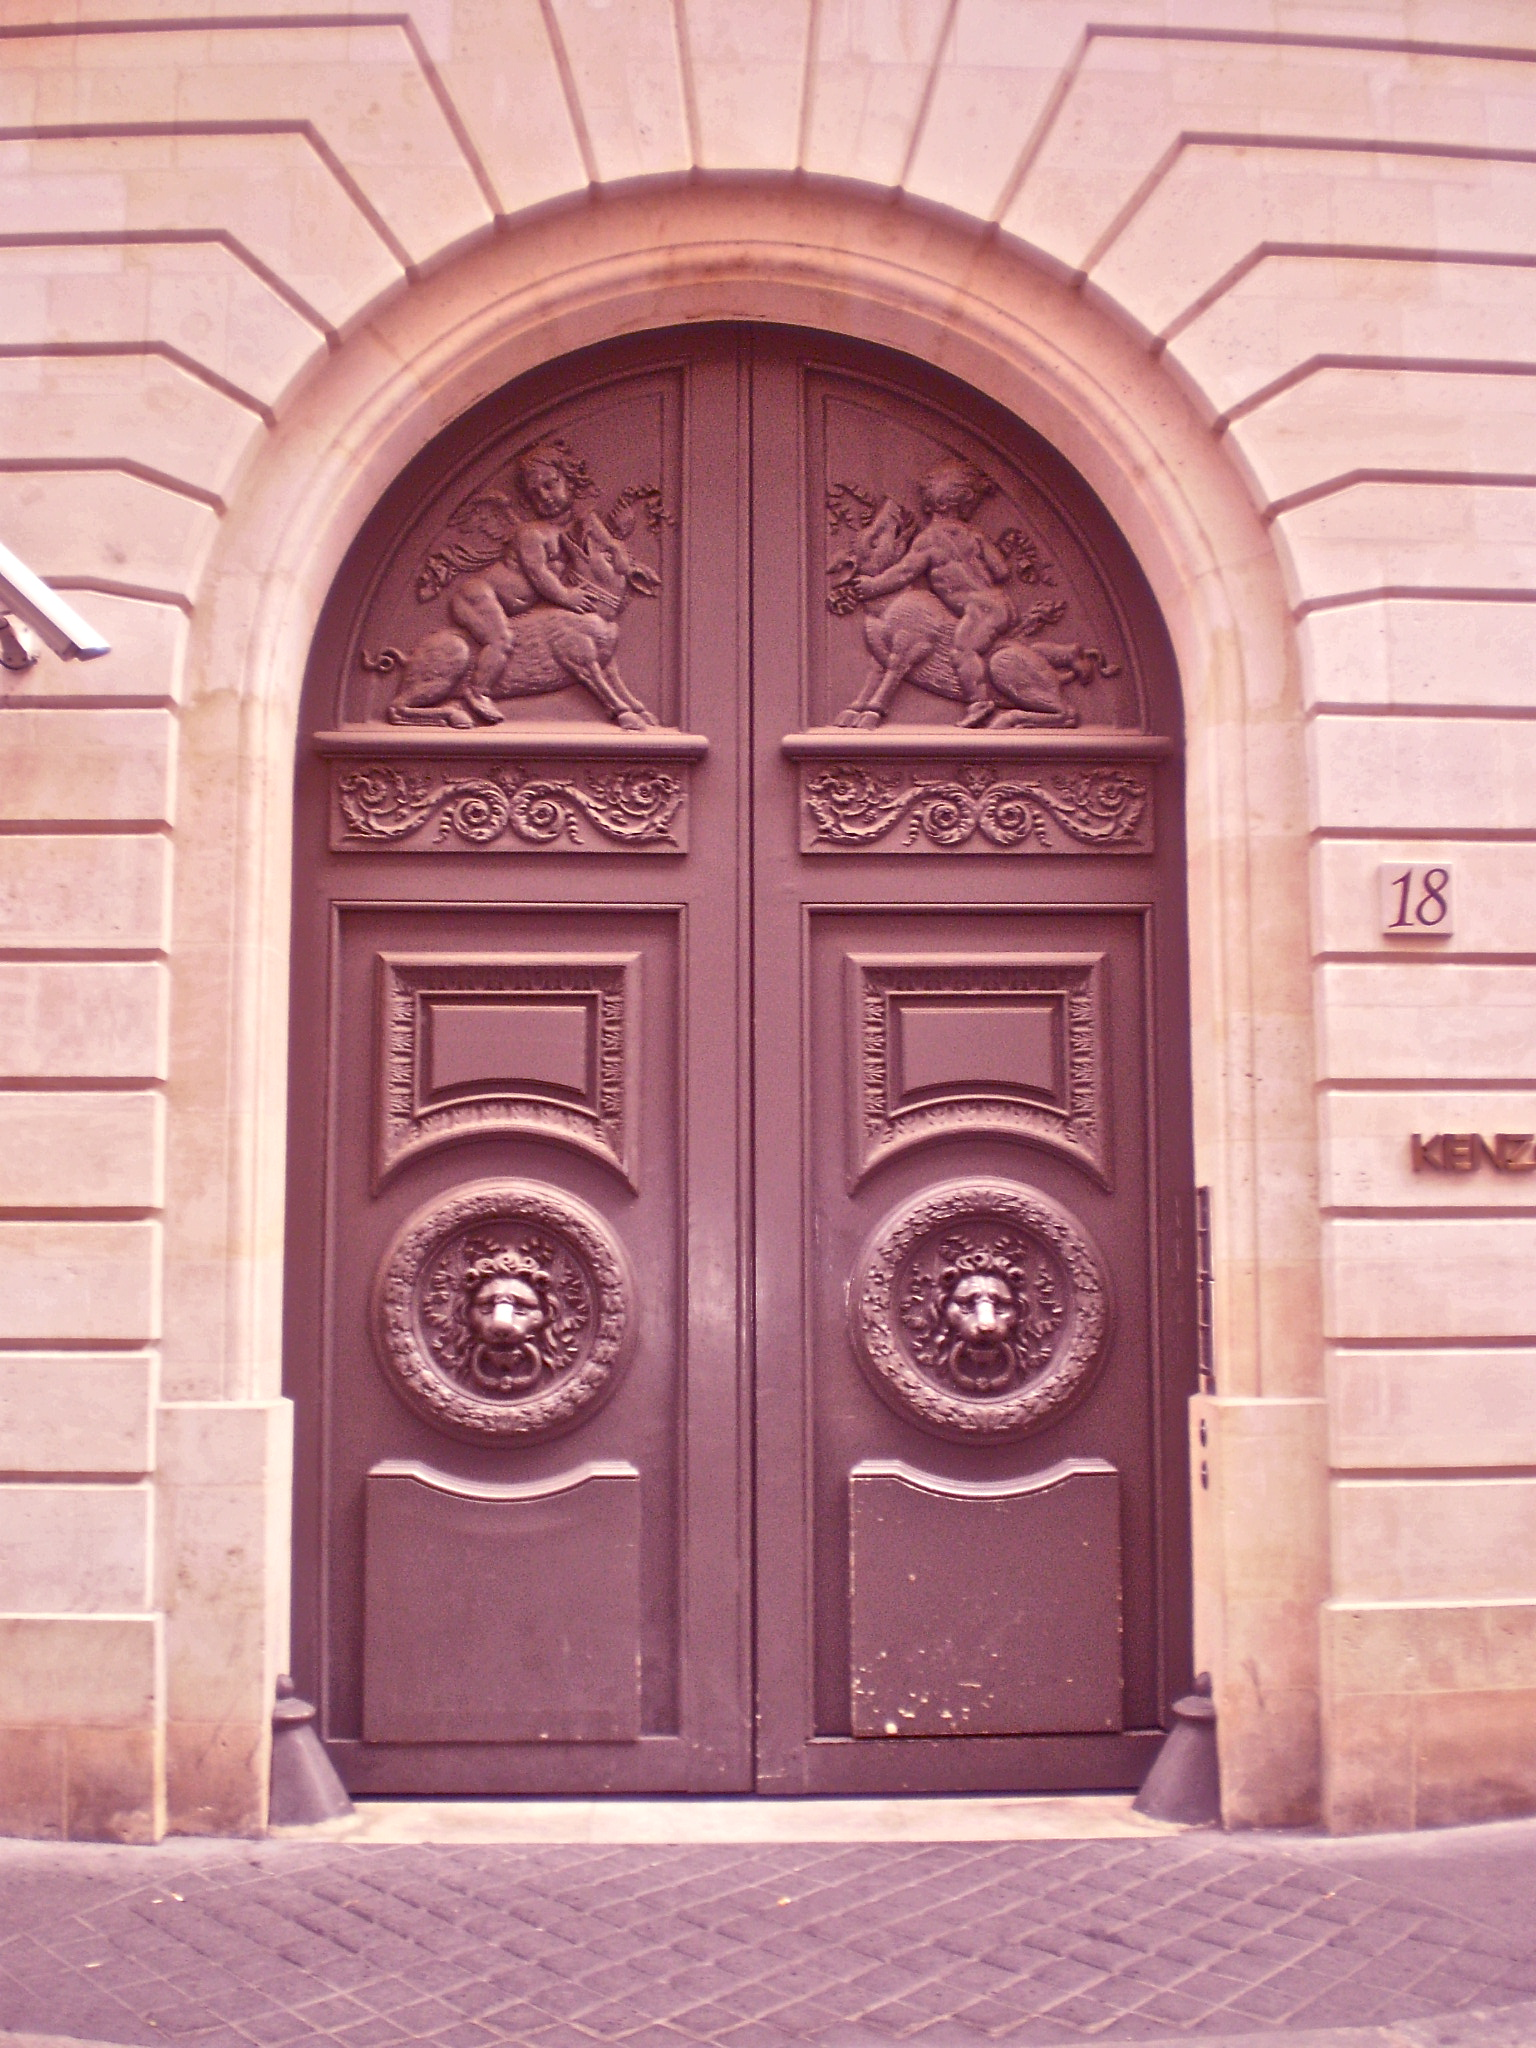 p71801271 HARLEQUINE DOORS IN PARIS